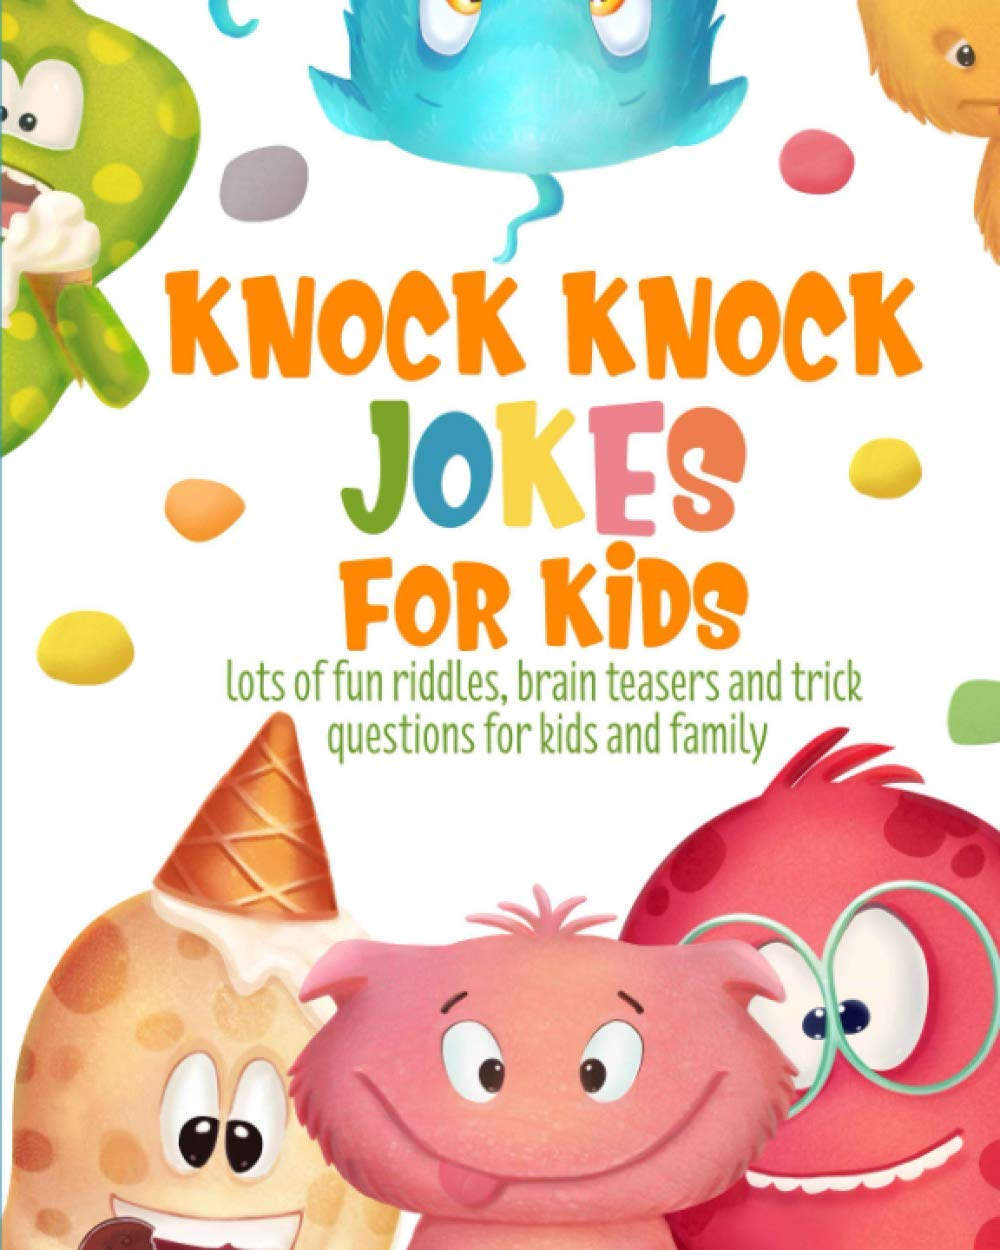 Knock Knock Jokes For Kids Lots Of Fun Riddles Brain Teasers And Trick Questions For Kids And Family Ages 6 15 Dorian Jane 9798681629245 Amazon Com Books